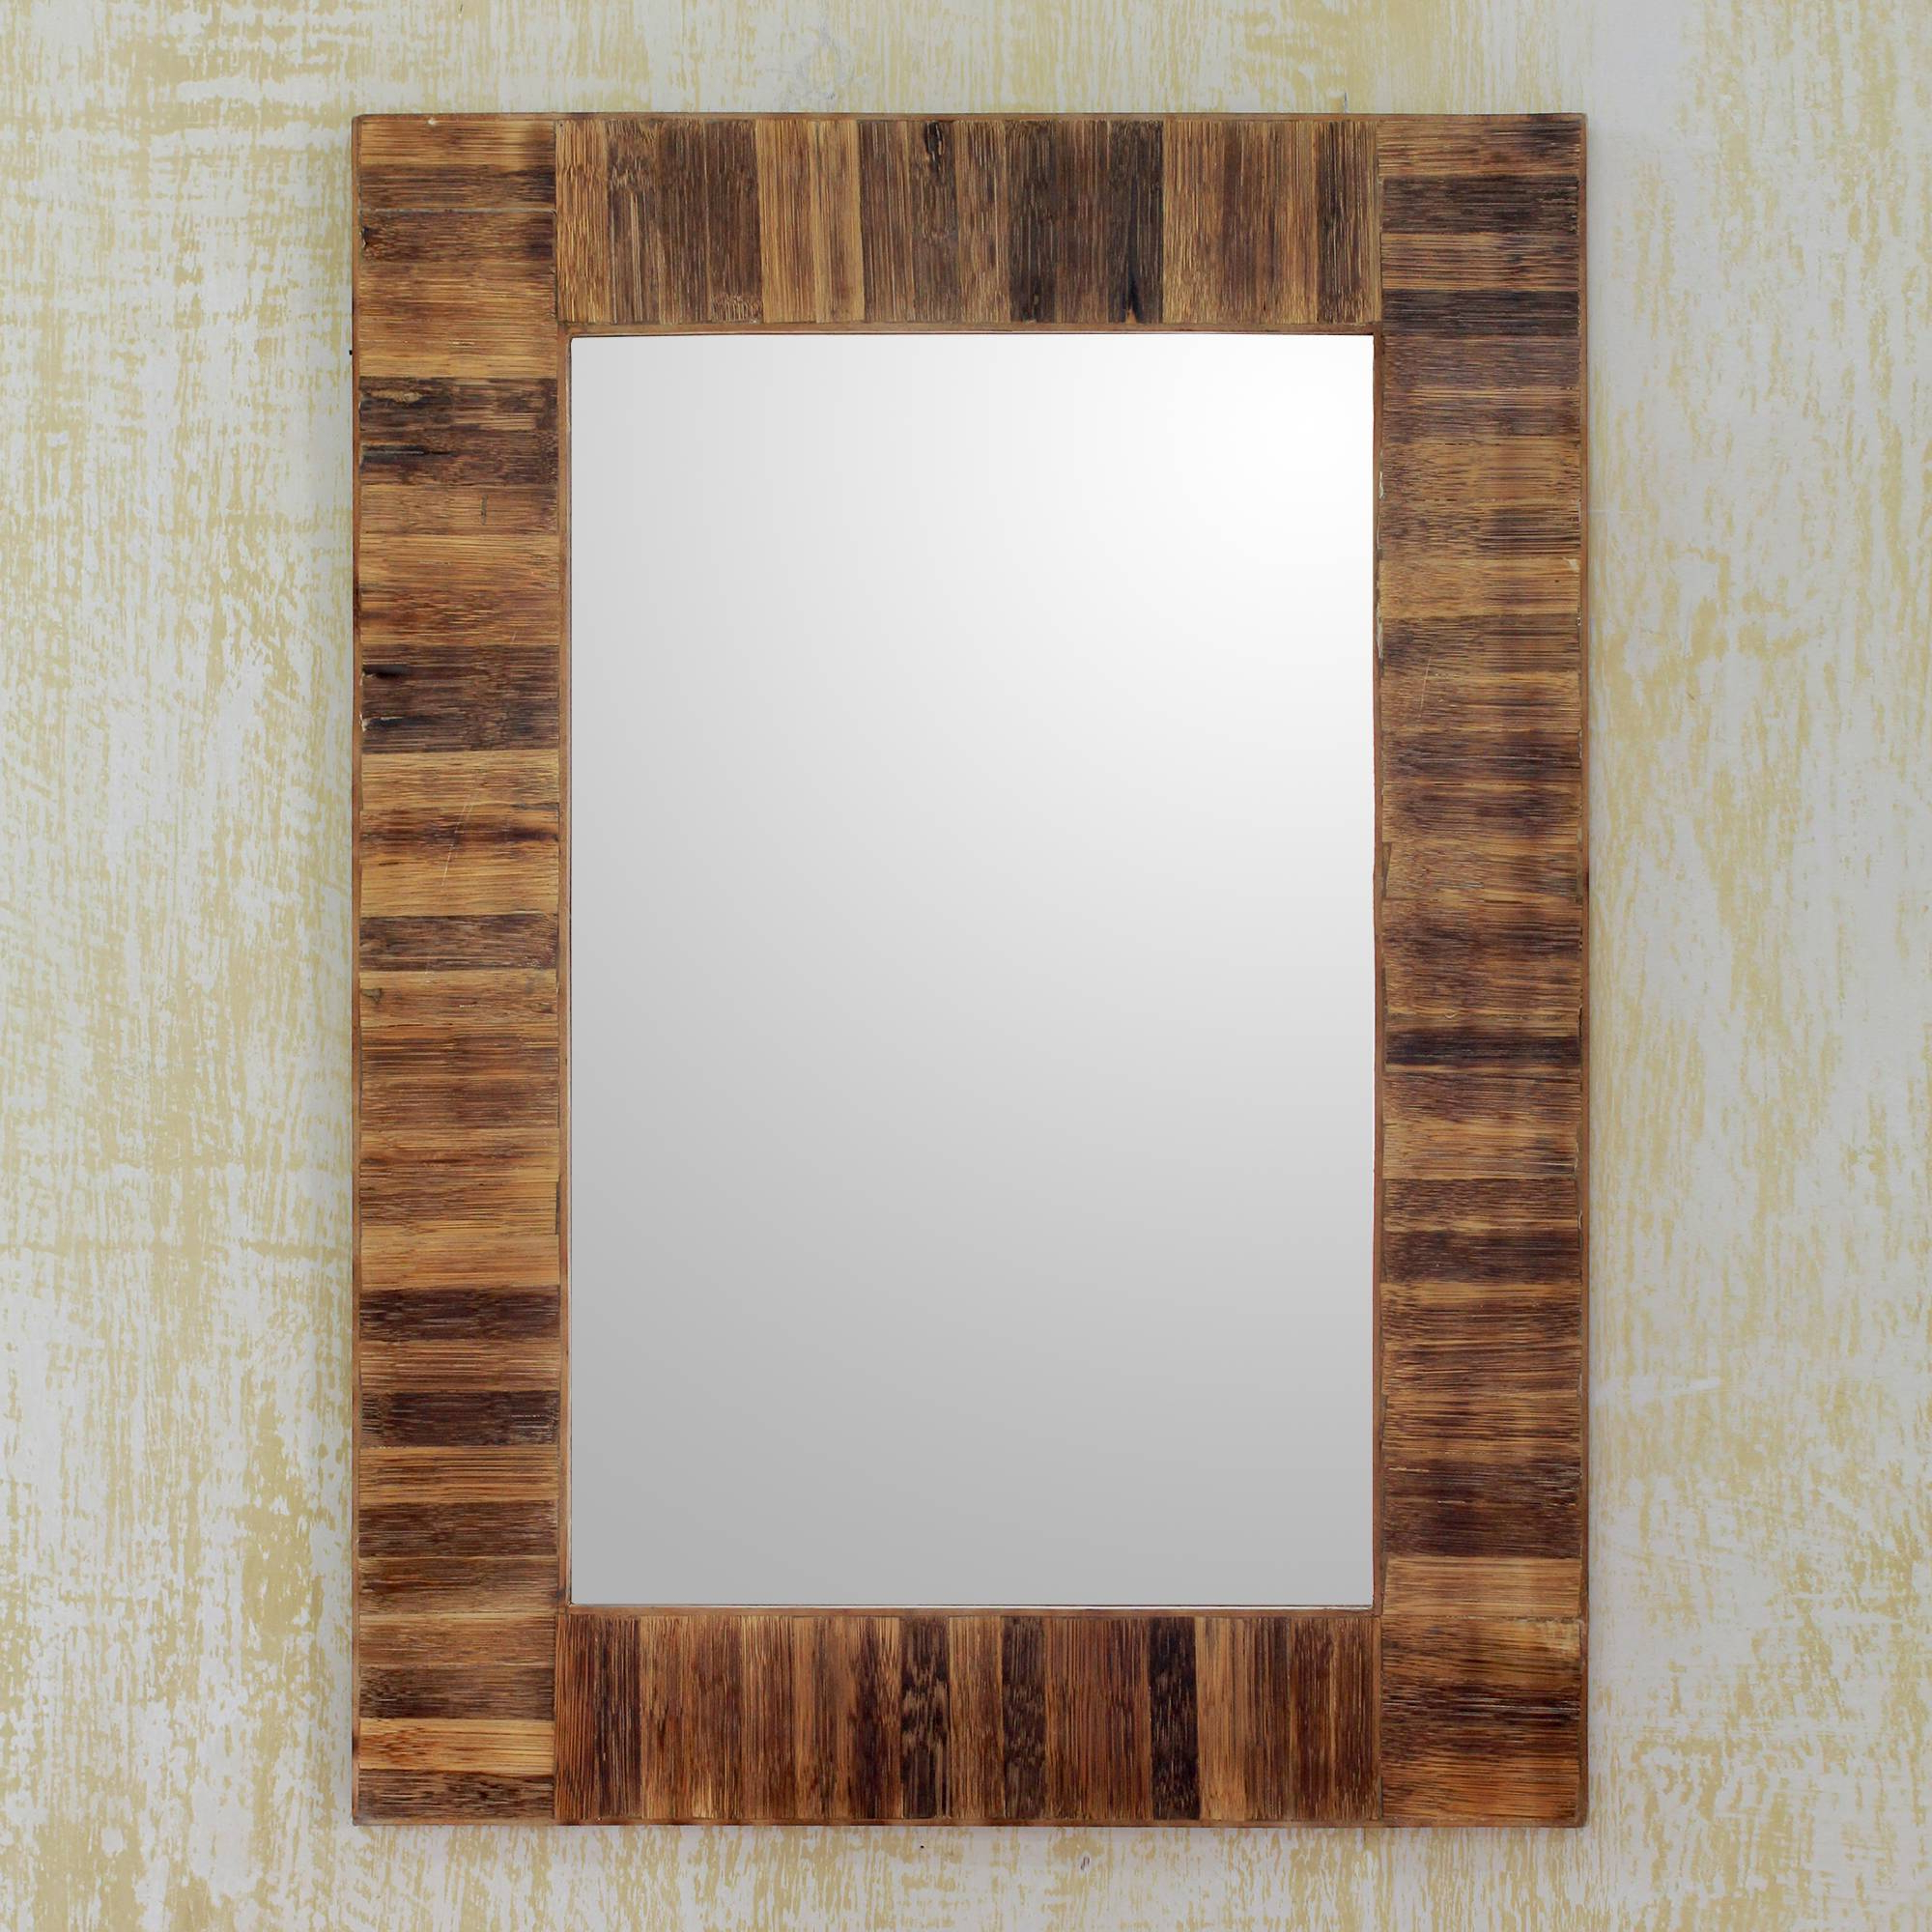 Most Popular Rustic Handmade Bamboo Framed Wall Mirror, 'bamboo Grove' Regarding Bamboo Framed Wall Mirrors (View 15 of 20)